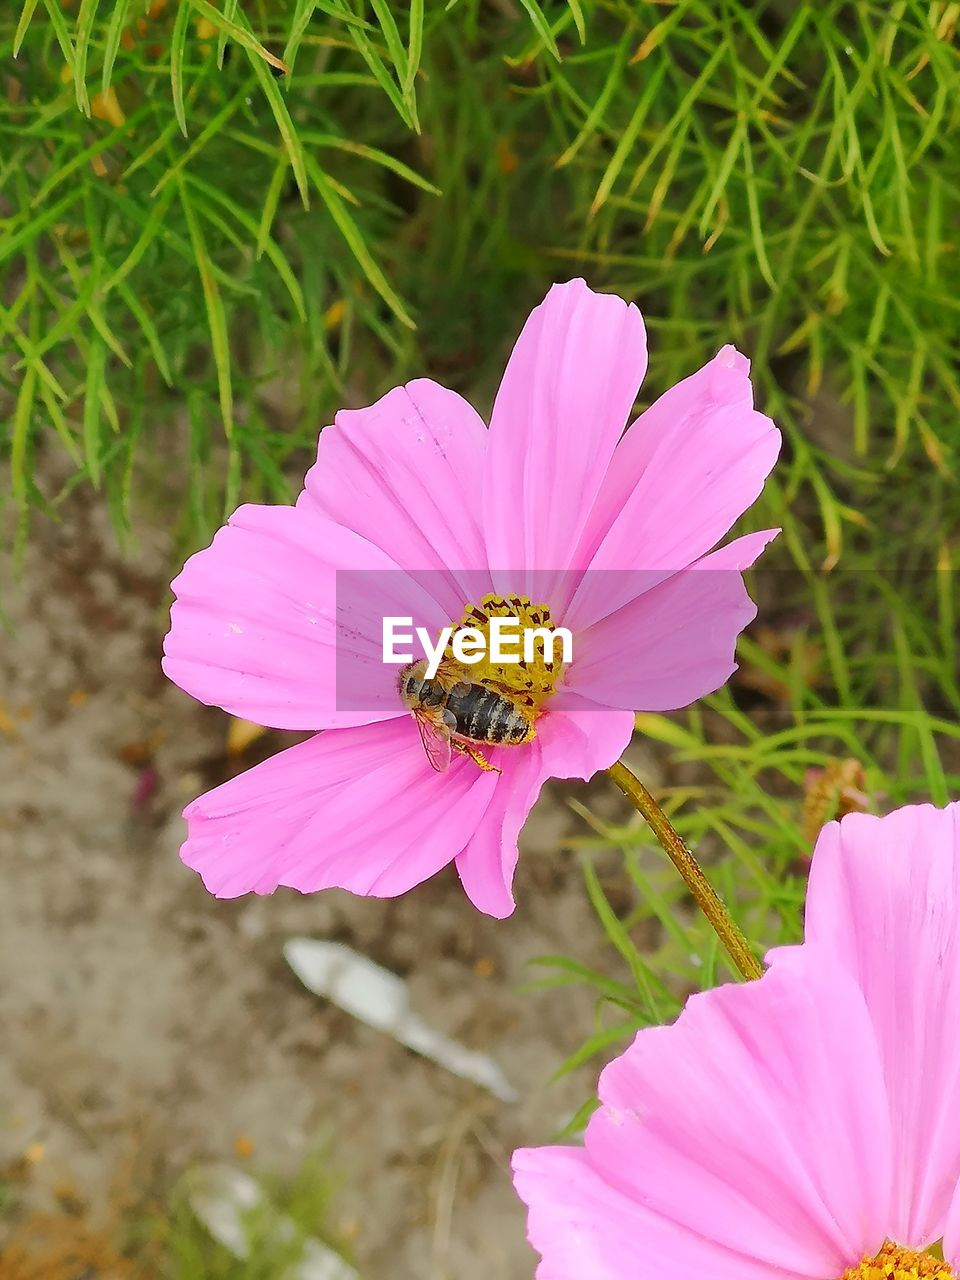 flowering plant, flower, petal, plant, beauty in nature, fragility, freshness, vulnerability, flower head, growth, pink color, invertebrate, one animal, inflorescence, animals in the wild, insect, close-up, animal themes, animal, animal wildlife, pollen, pollination, no people, purple